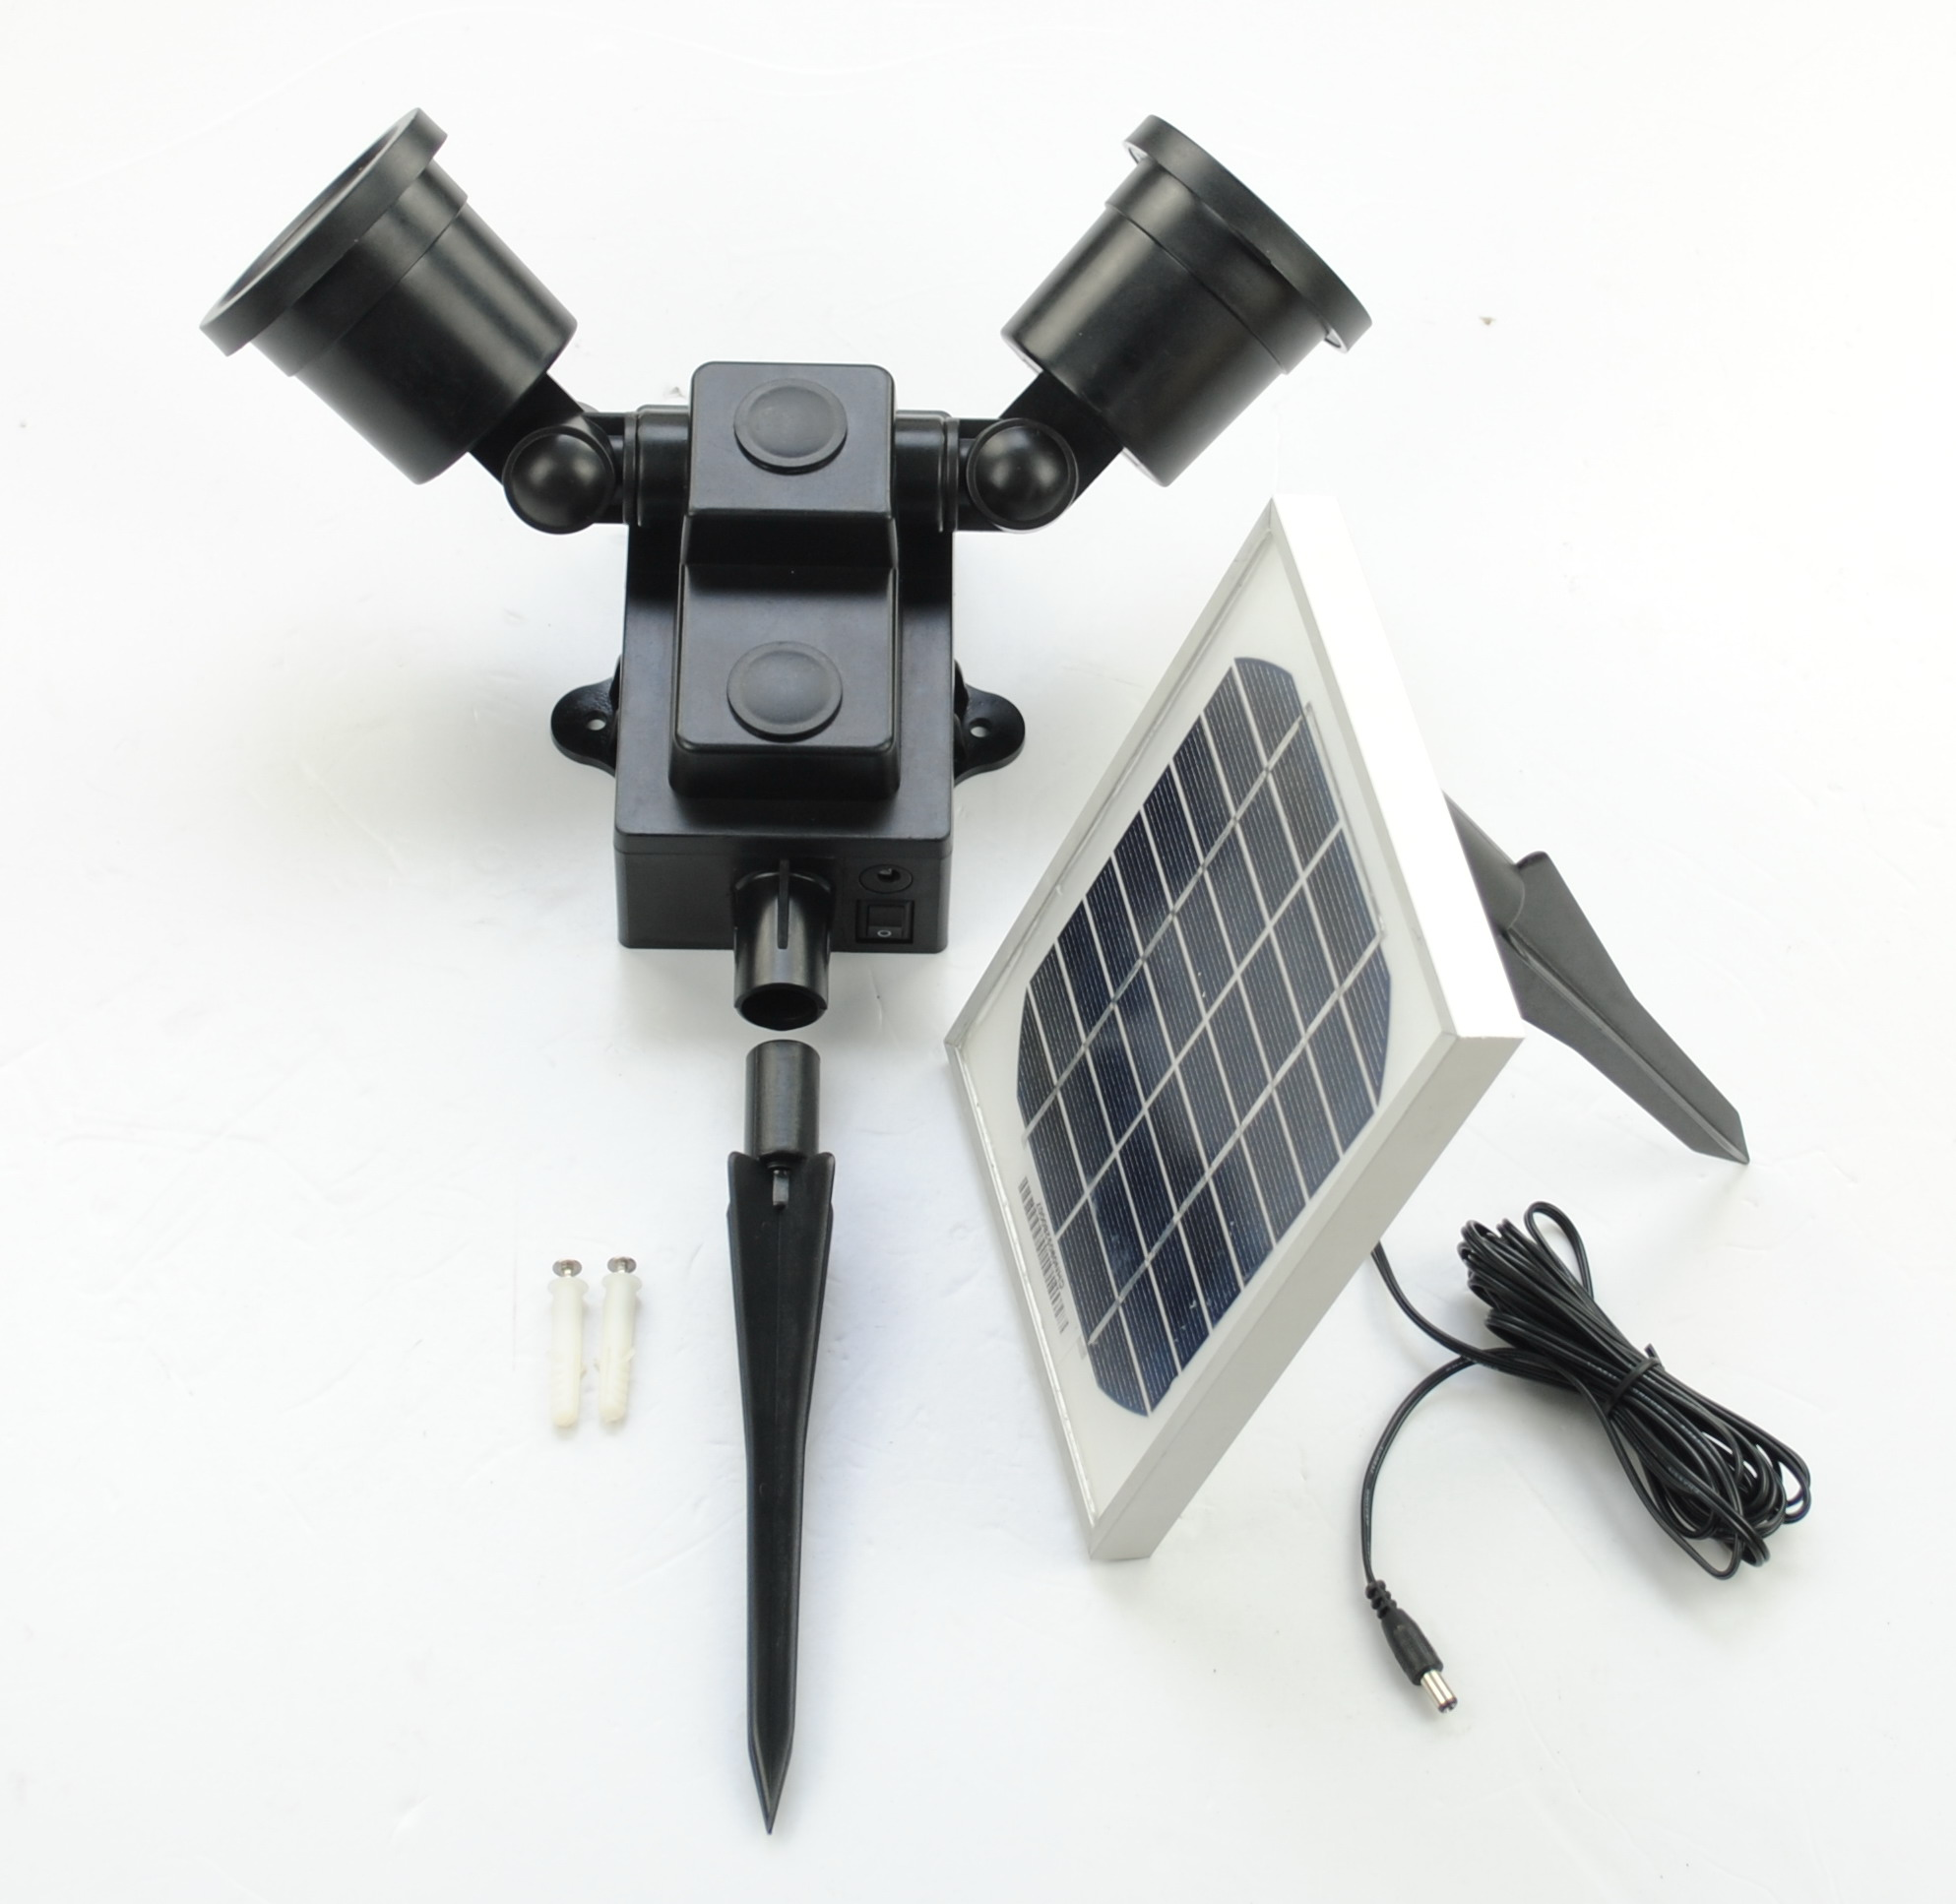 Dual head 24 LED Outdoor Two Light Solar Powered Wall Mount Flood Light eBay